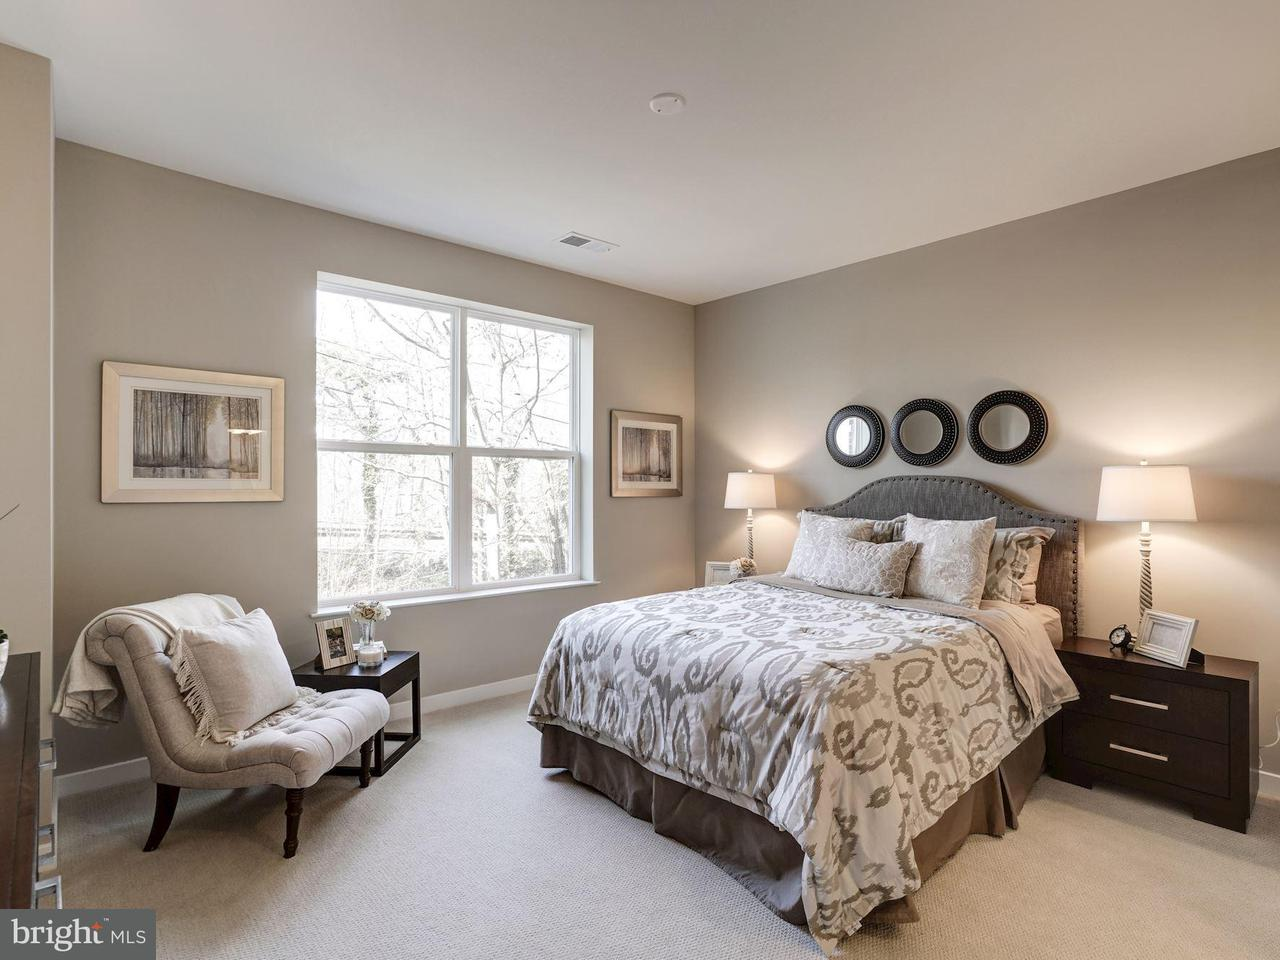 Additional photo for property listing at 9450 Silver King Ct #109 9450 Silver King Ct #109 Fairfax, Virginia 22031 Estados Unidos